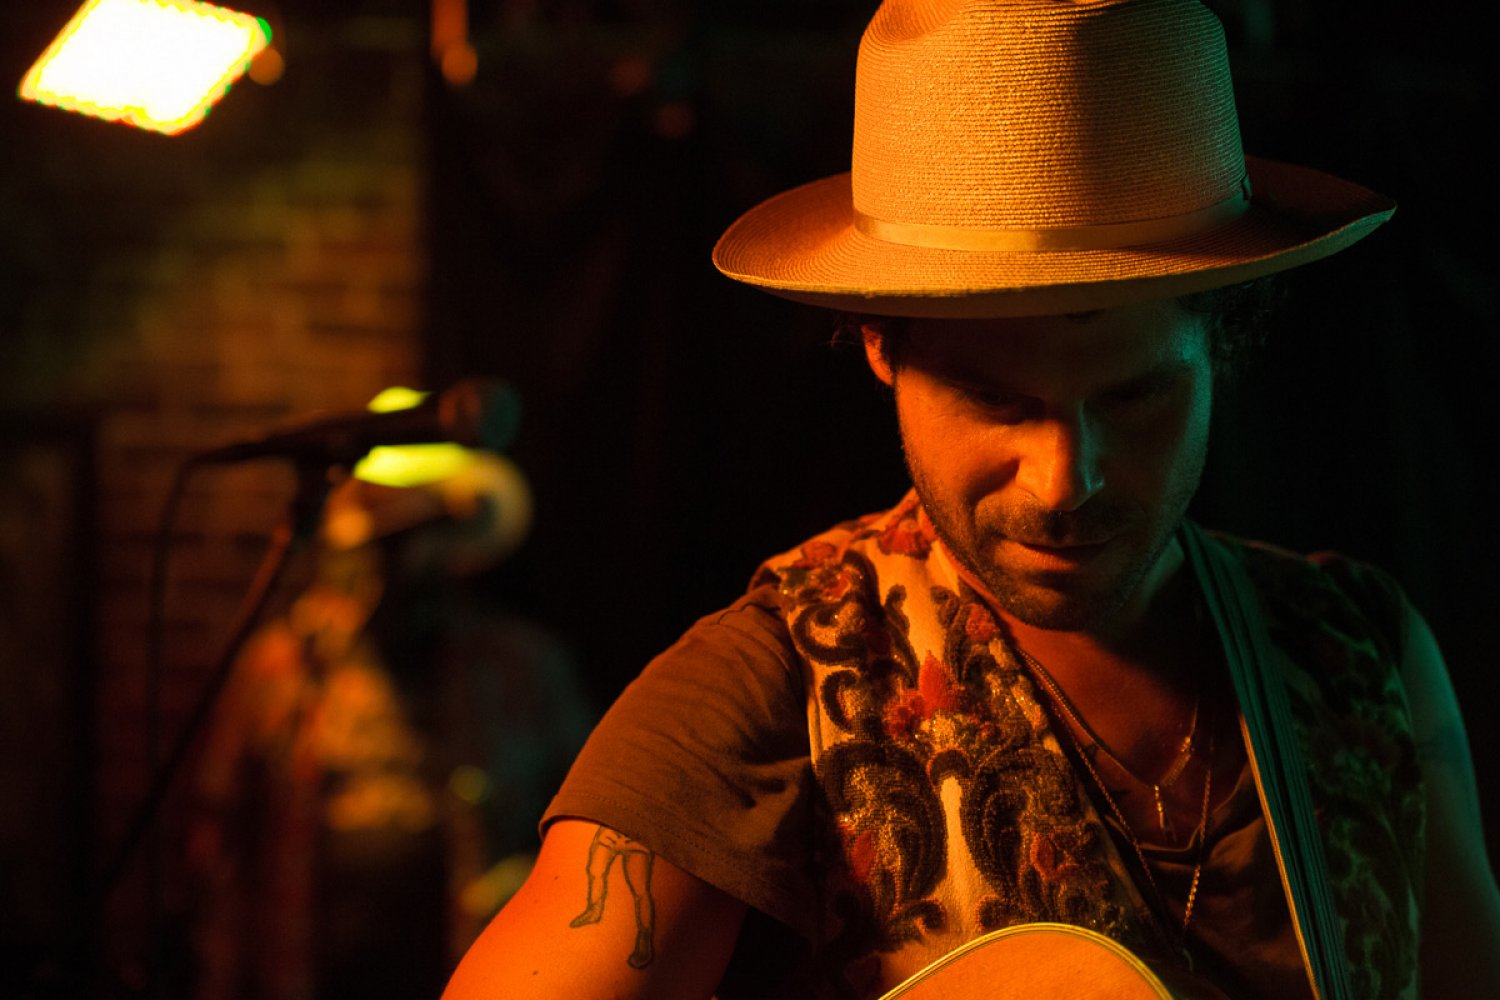 Langhorne Slim by Nashville Live Music Photographer Jon Karr